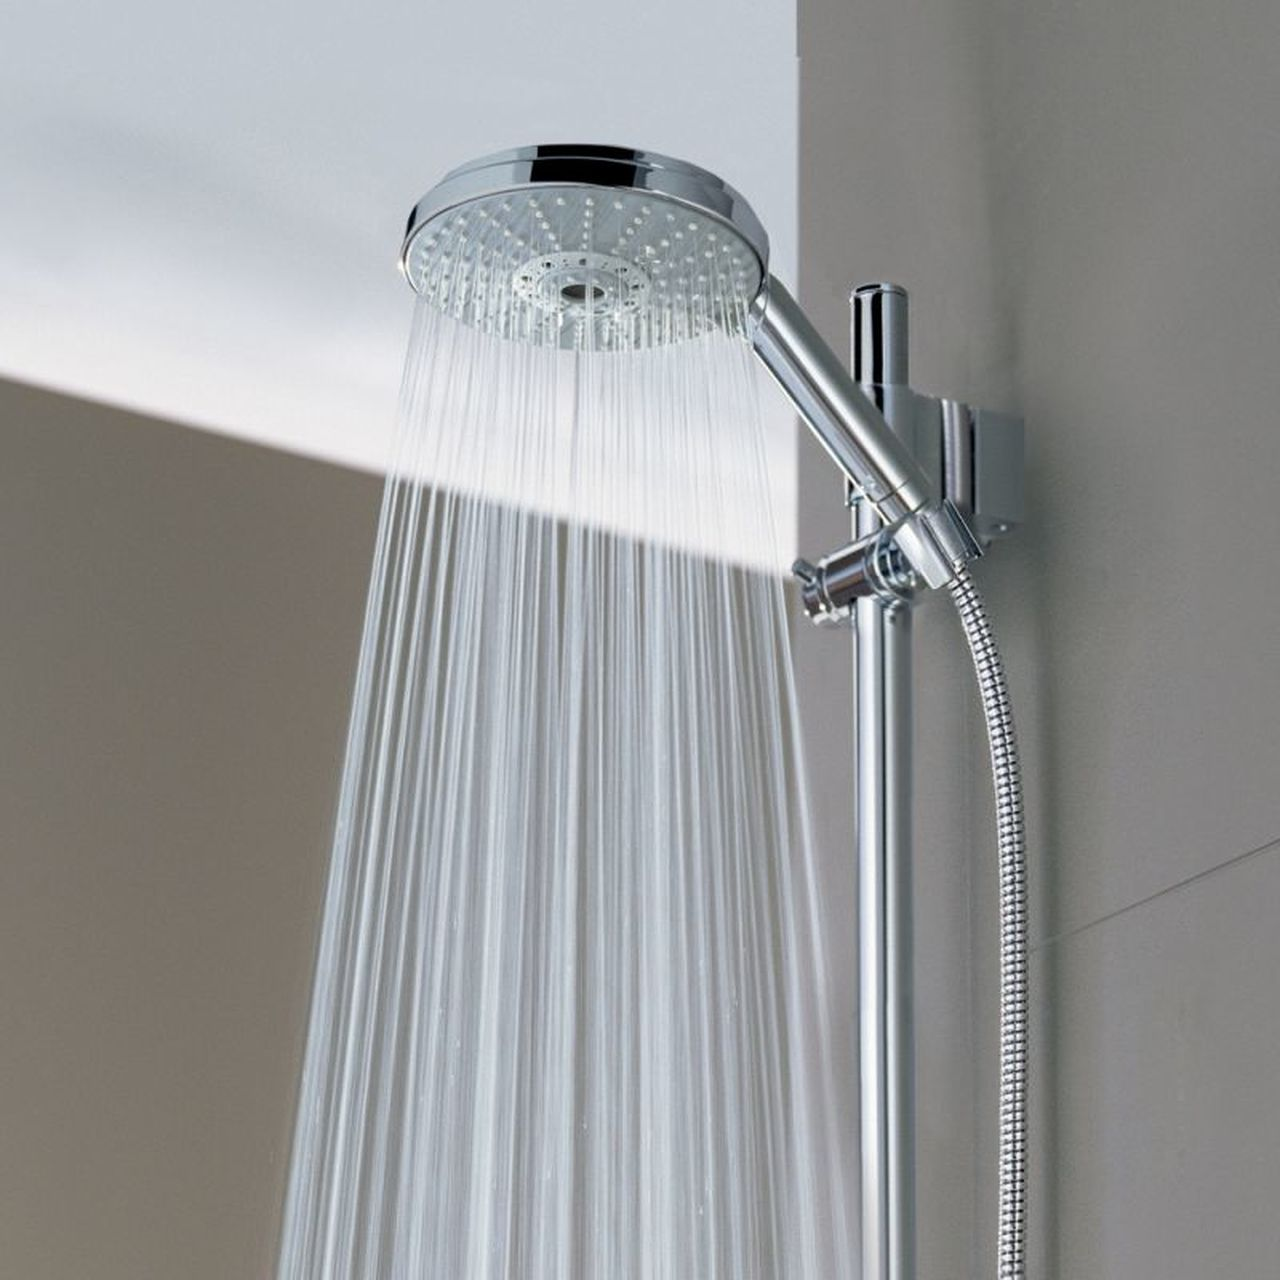 rain shower heads reviews